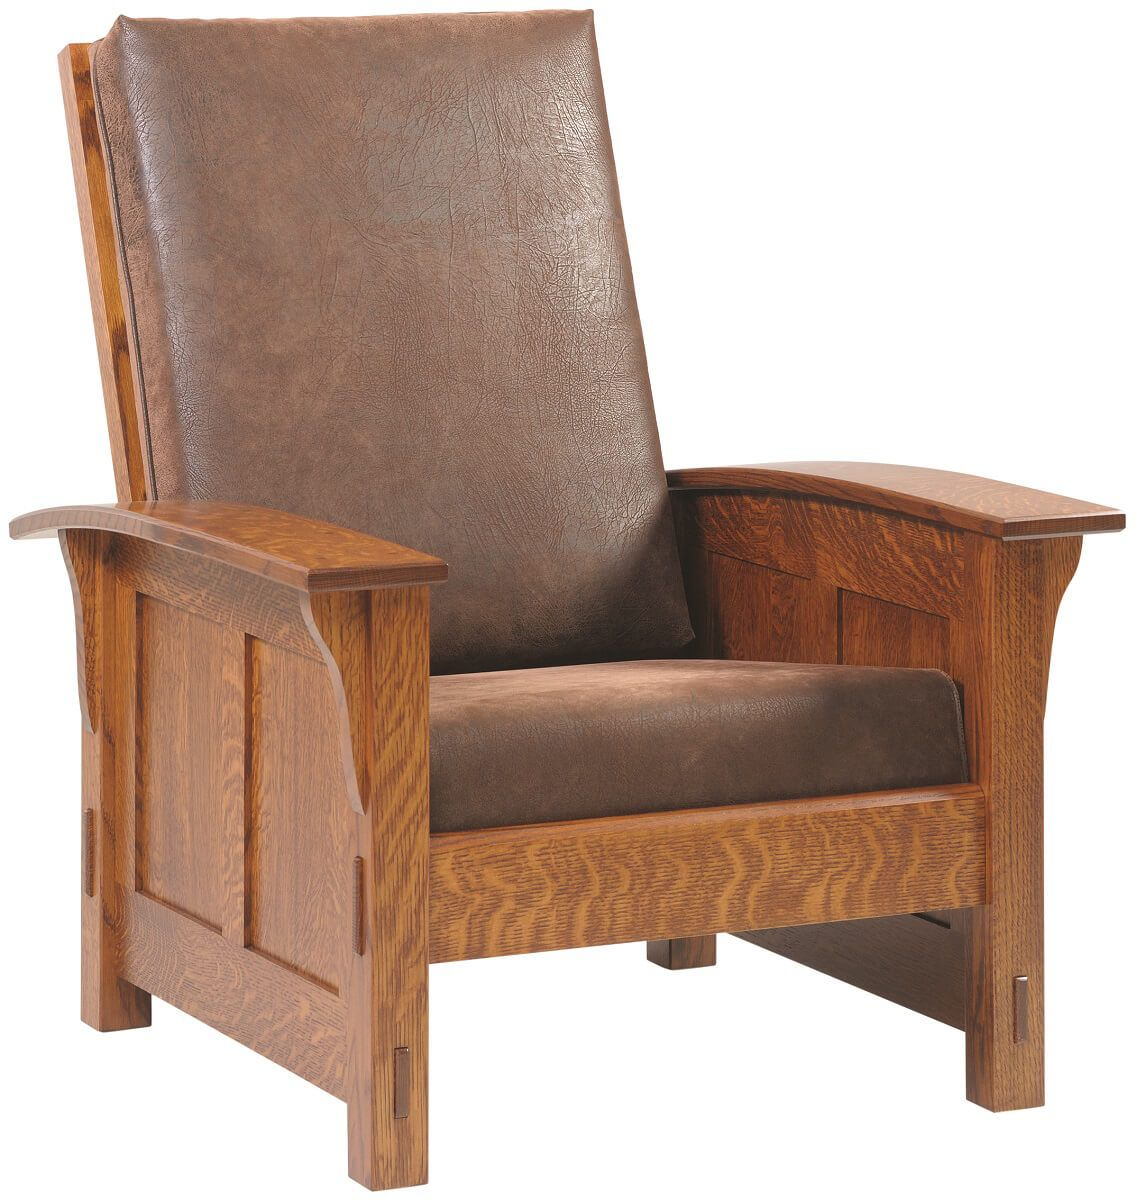 Colonial Cottage Morris Chair